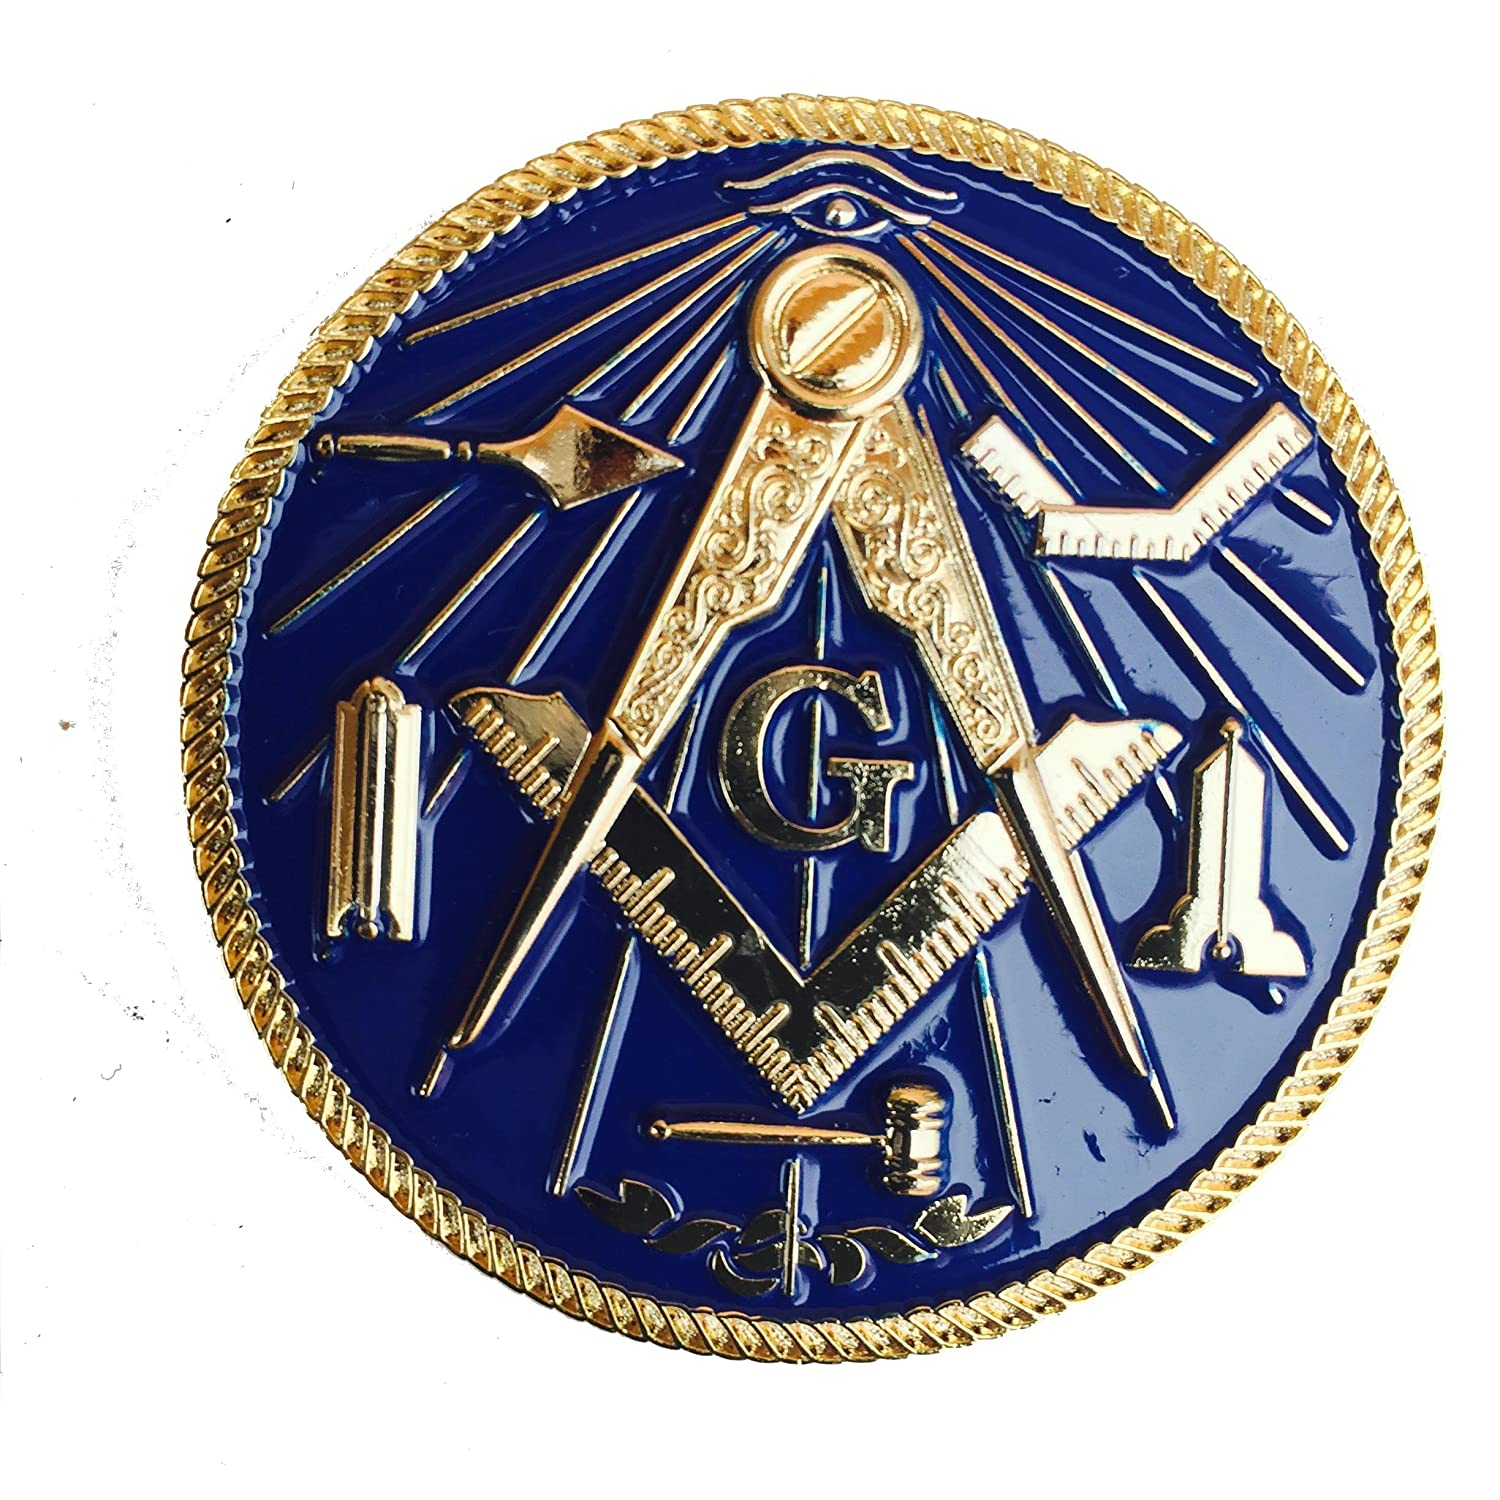 2 Mini Small Masonic Masters Motorcycle Compact Car Auto Emblem Reflex Blue Equinox Masonic Regalia MINIF-167YT178